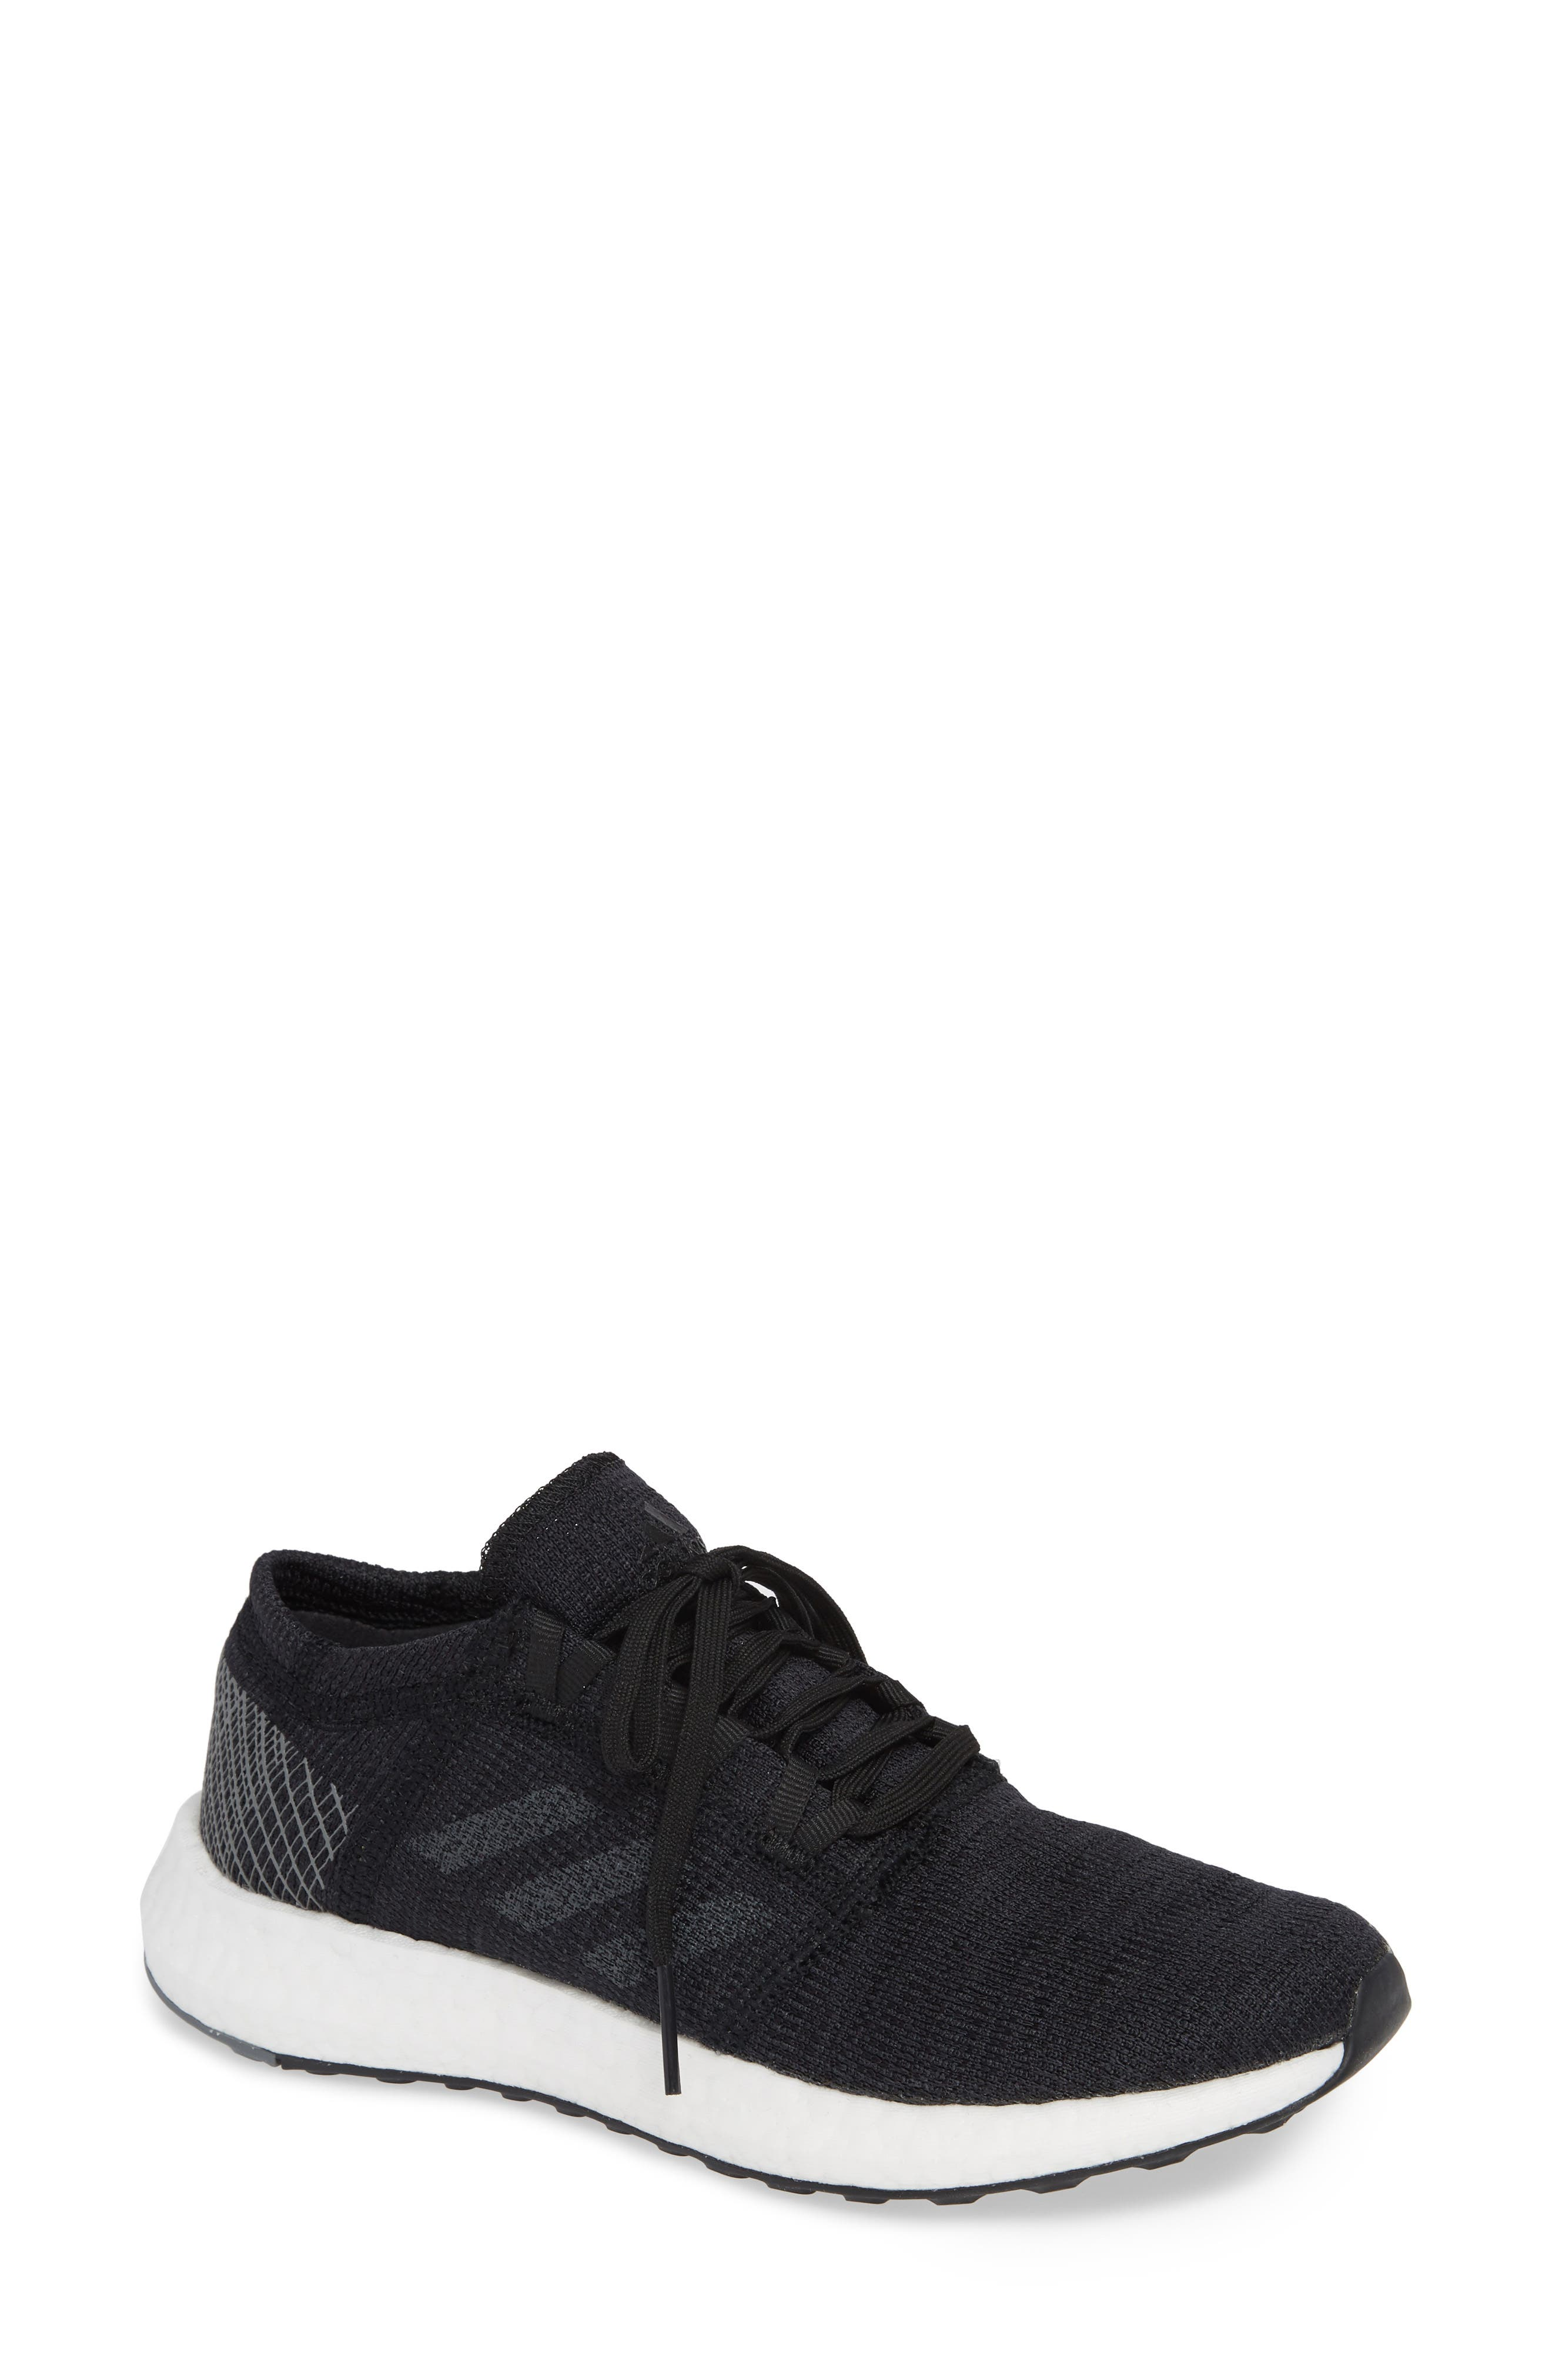 PureBoost X Element Knit Running Shoe,                         Main,                         color, 001